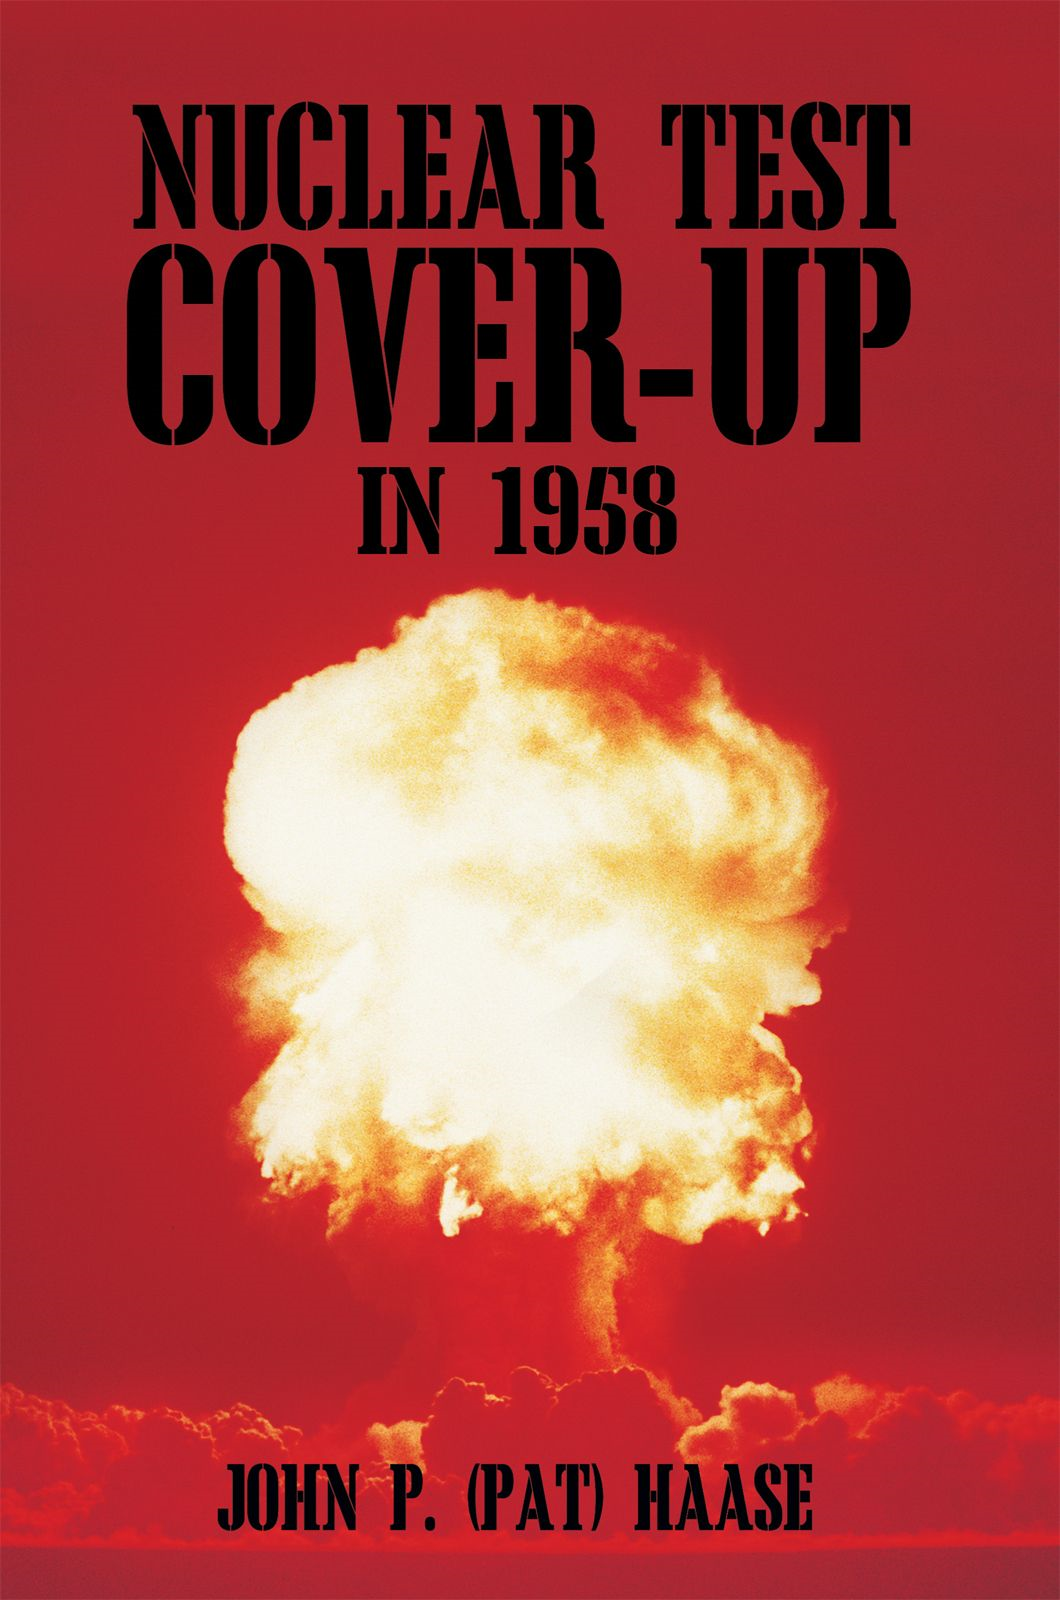 Nuclear Test Cover-Up in 1958 By: John P. (Pat) Haase